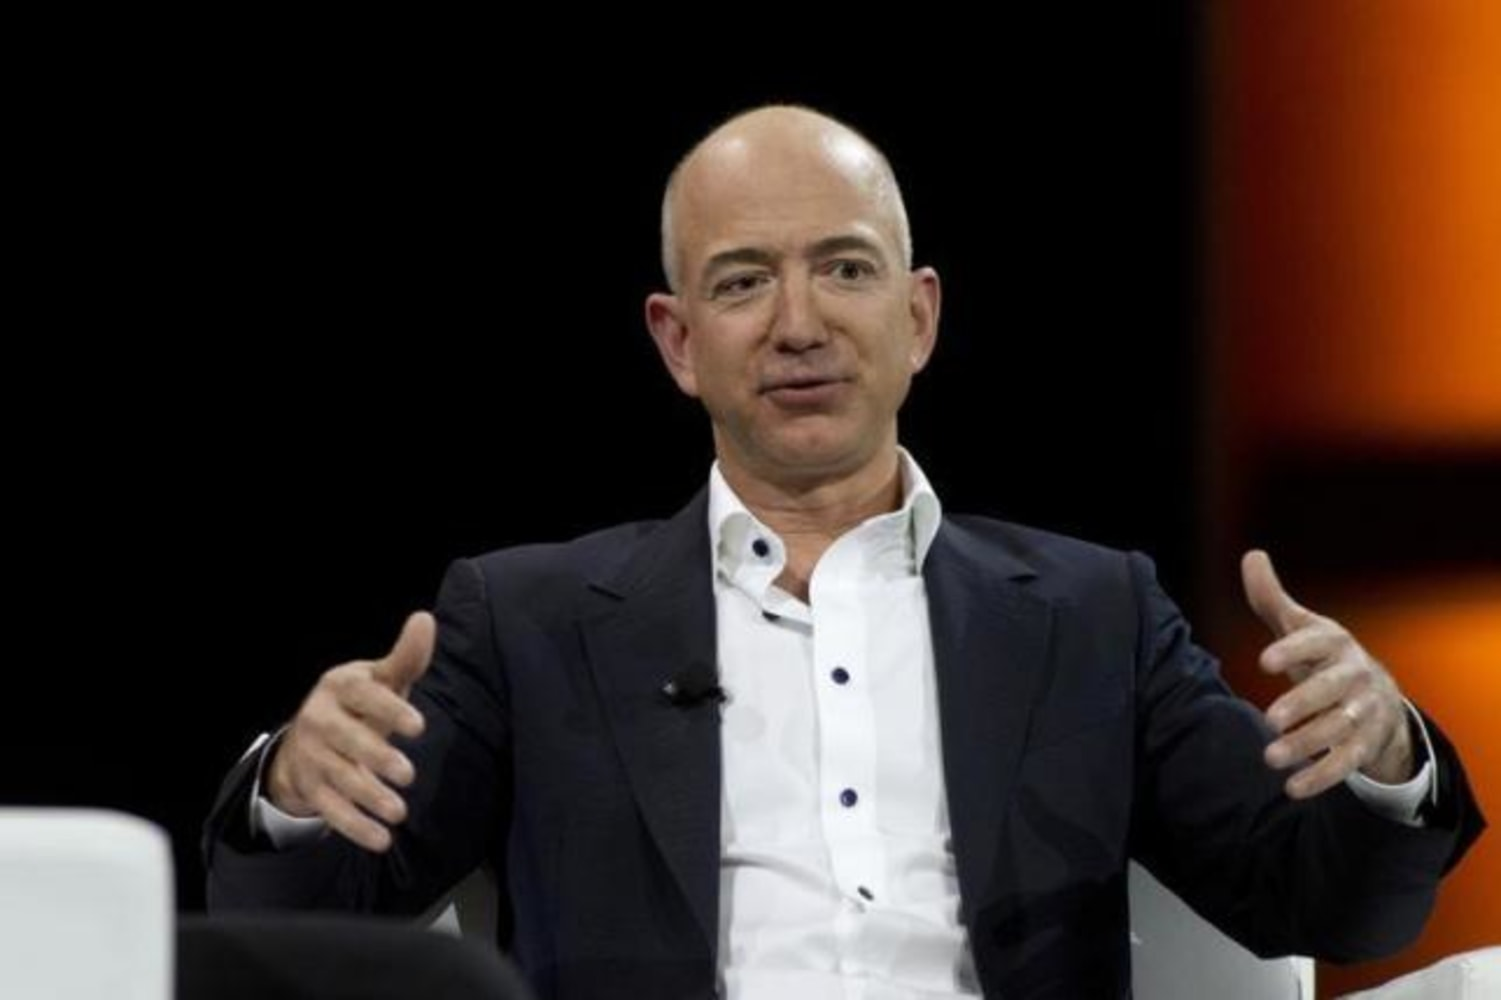 Amazon CEO Trumpets Free Speech Amid Gawker, Silicon Valley Clash